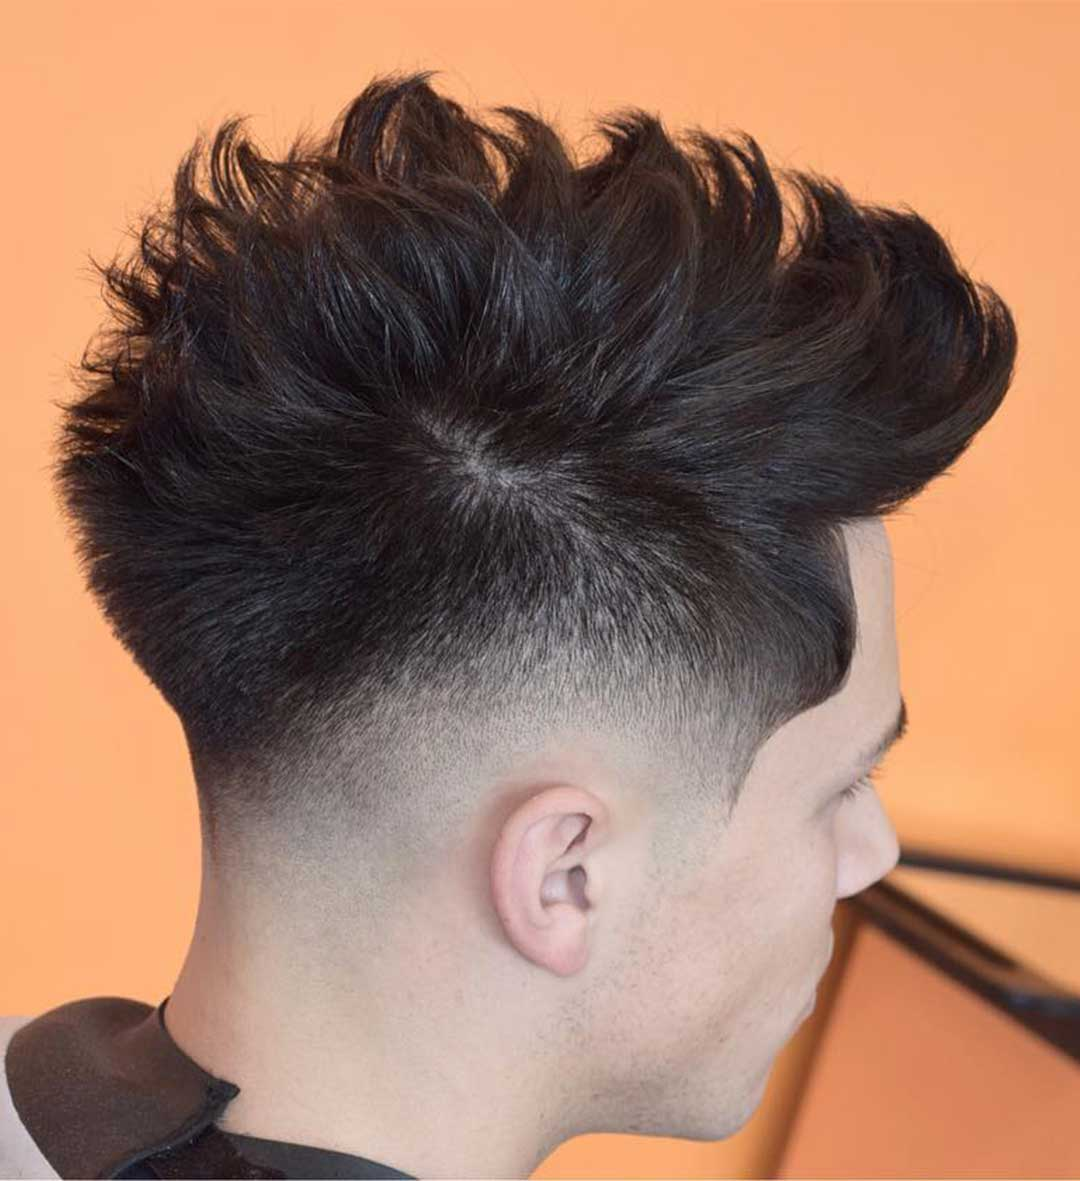 Messy and Spiky Fohawk